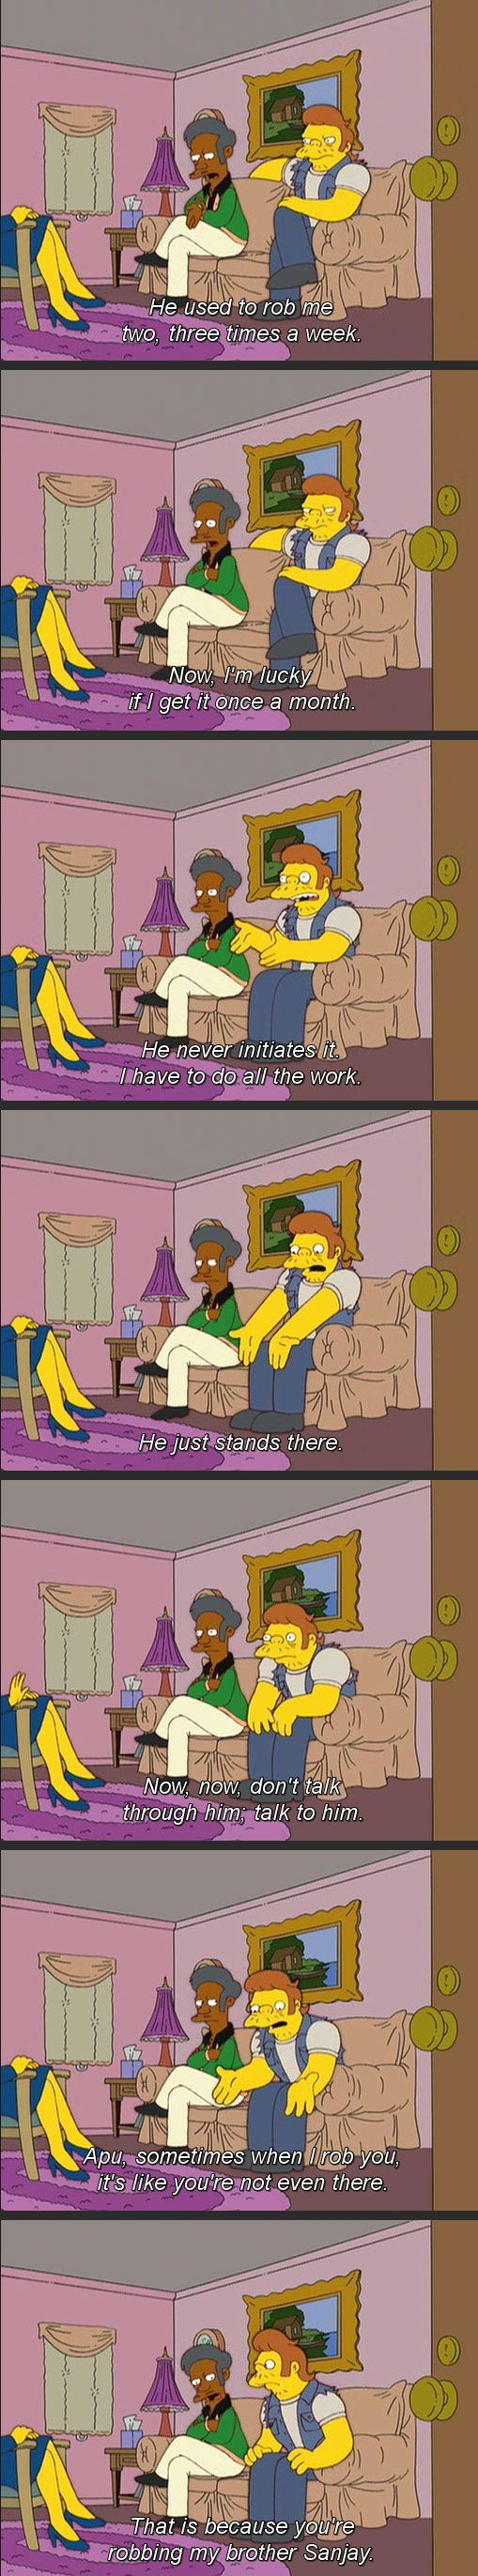 One of my favorite moments in The Simpsons